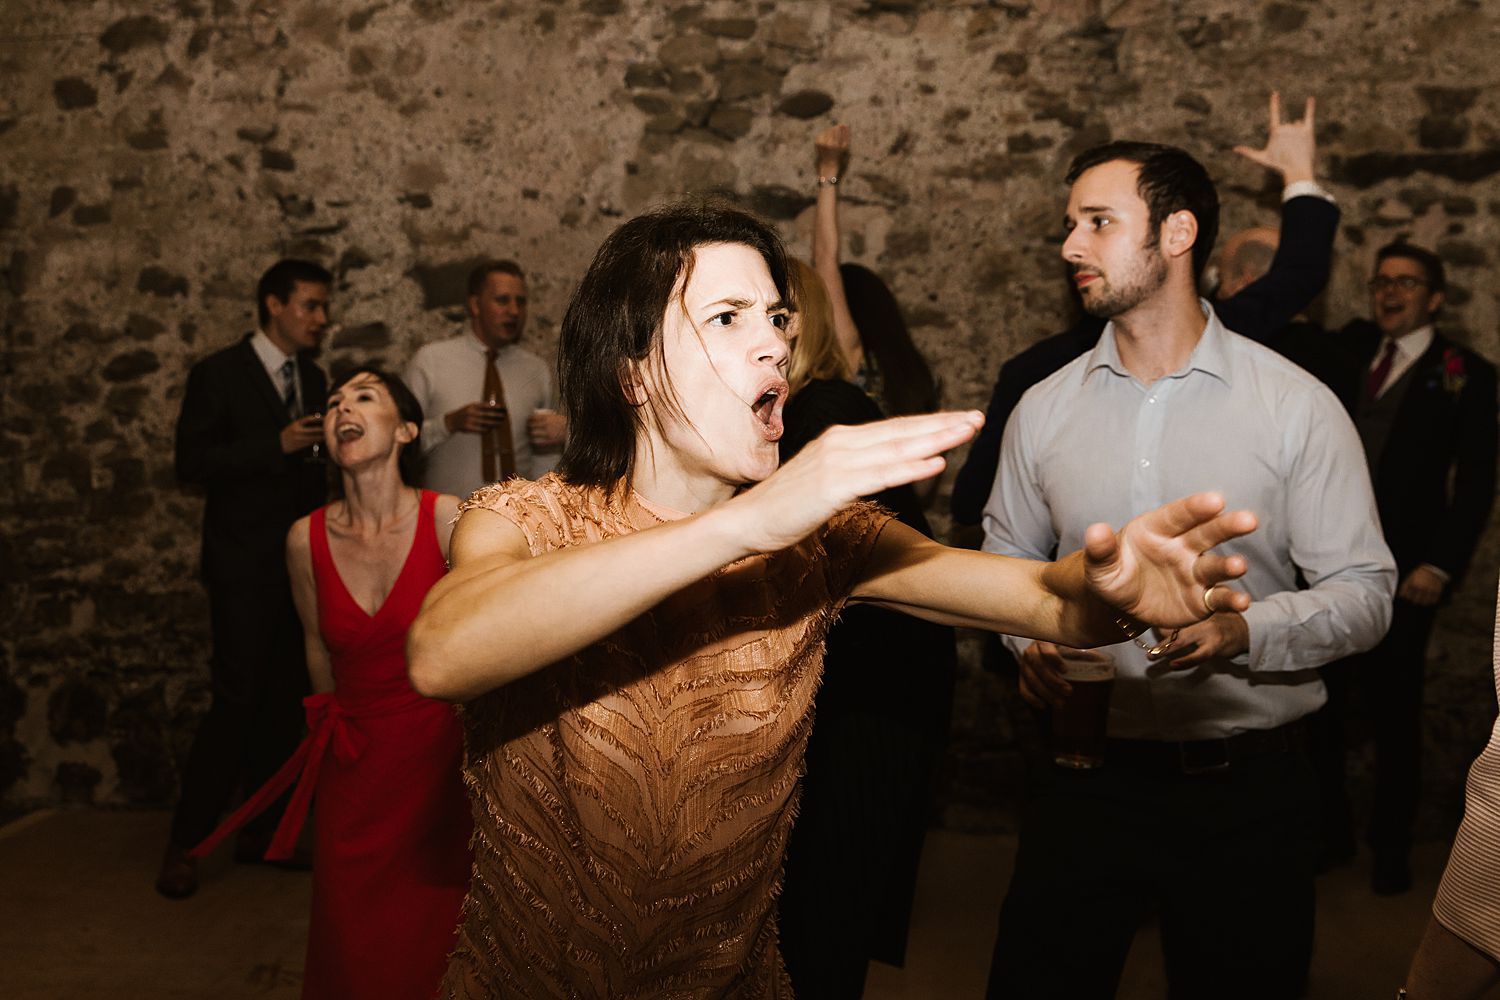 Dancers on the dancefloor at evening reception of Park House Barn wedding venue